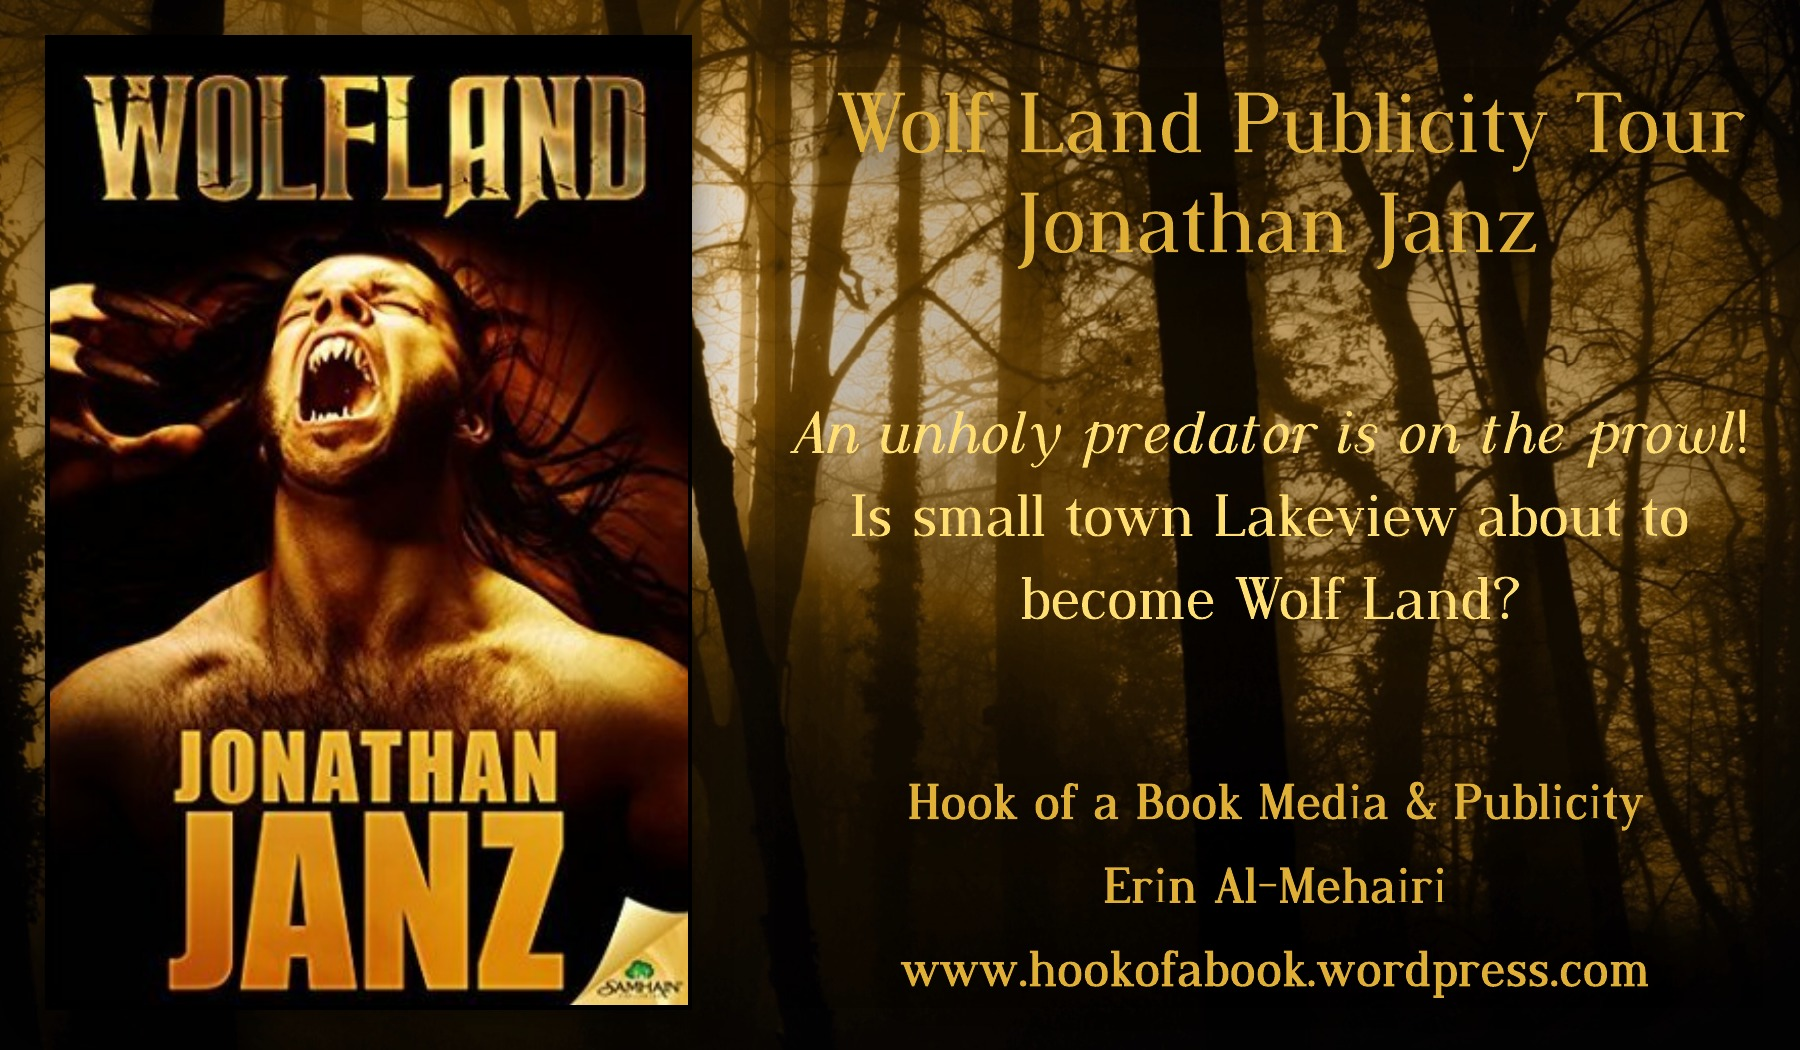 Wolf Land tour graphic.jpeg